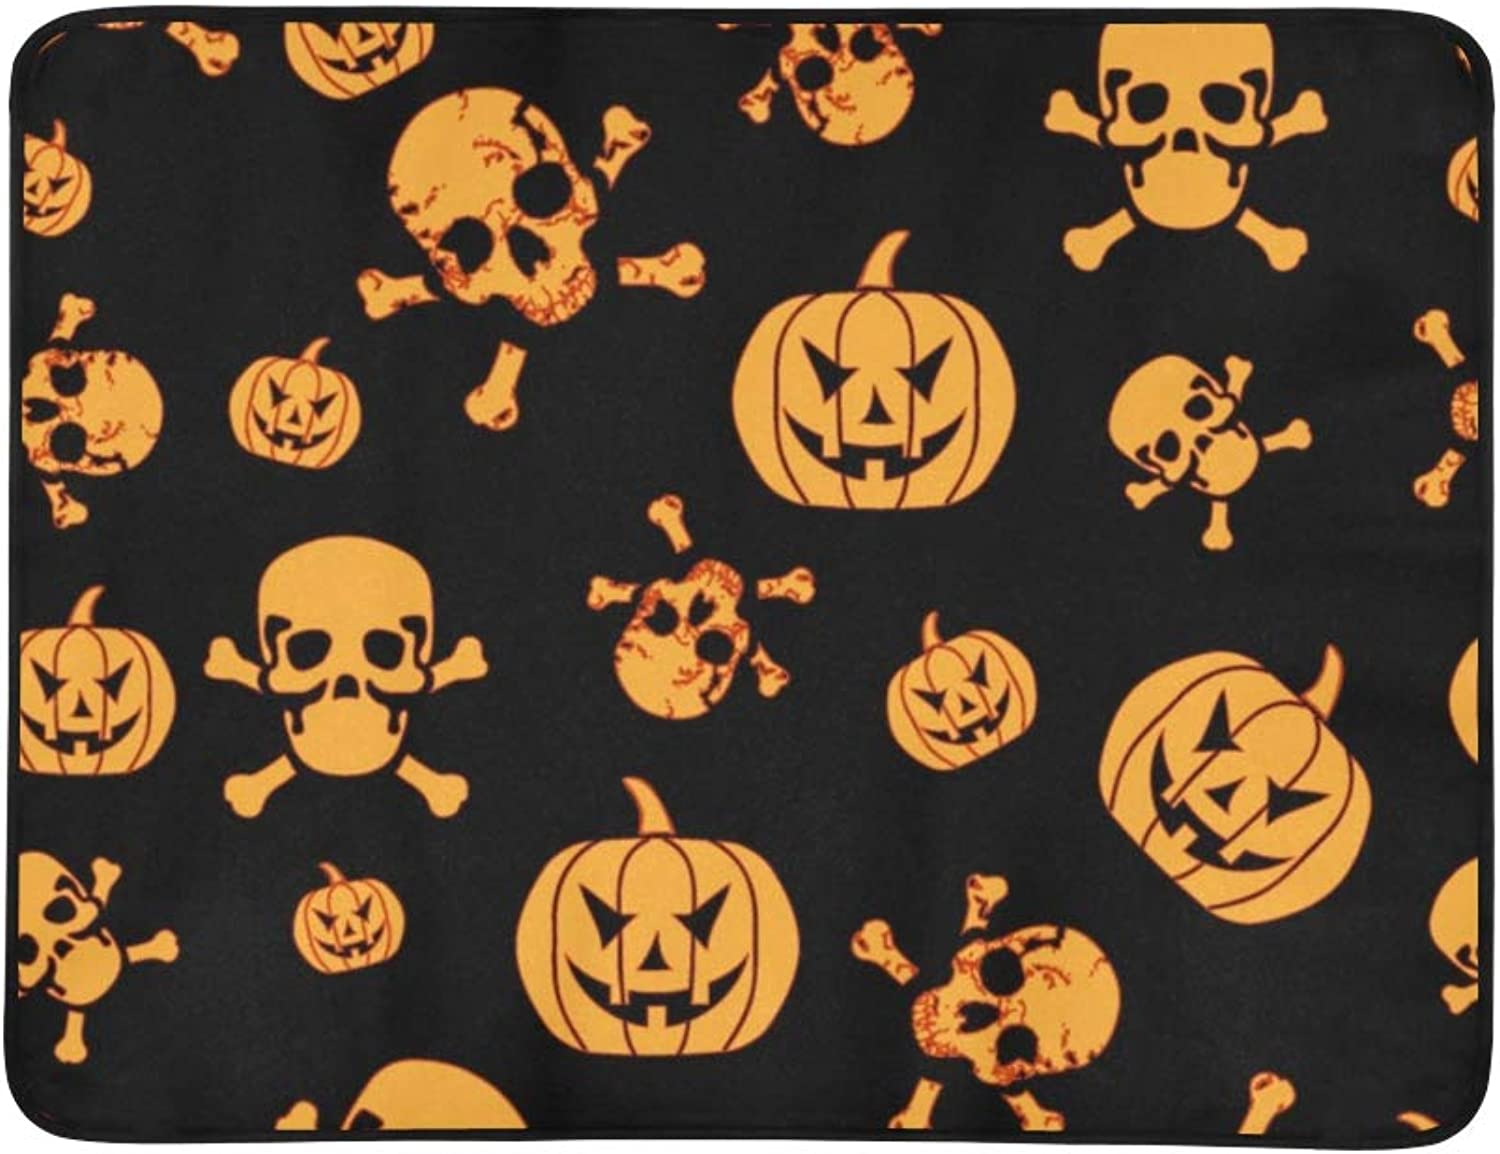 Conceptual Halloween Horror Pumpkin Portable and Foldable Blanket Mat 60x78 Inch Handy Mat for Camping Picnic Beach Indoor Outdoor Travel